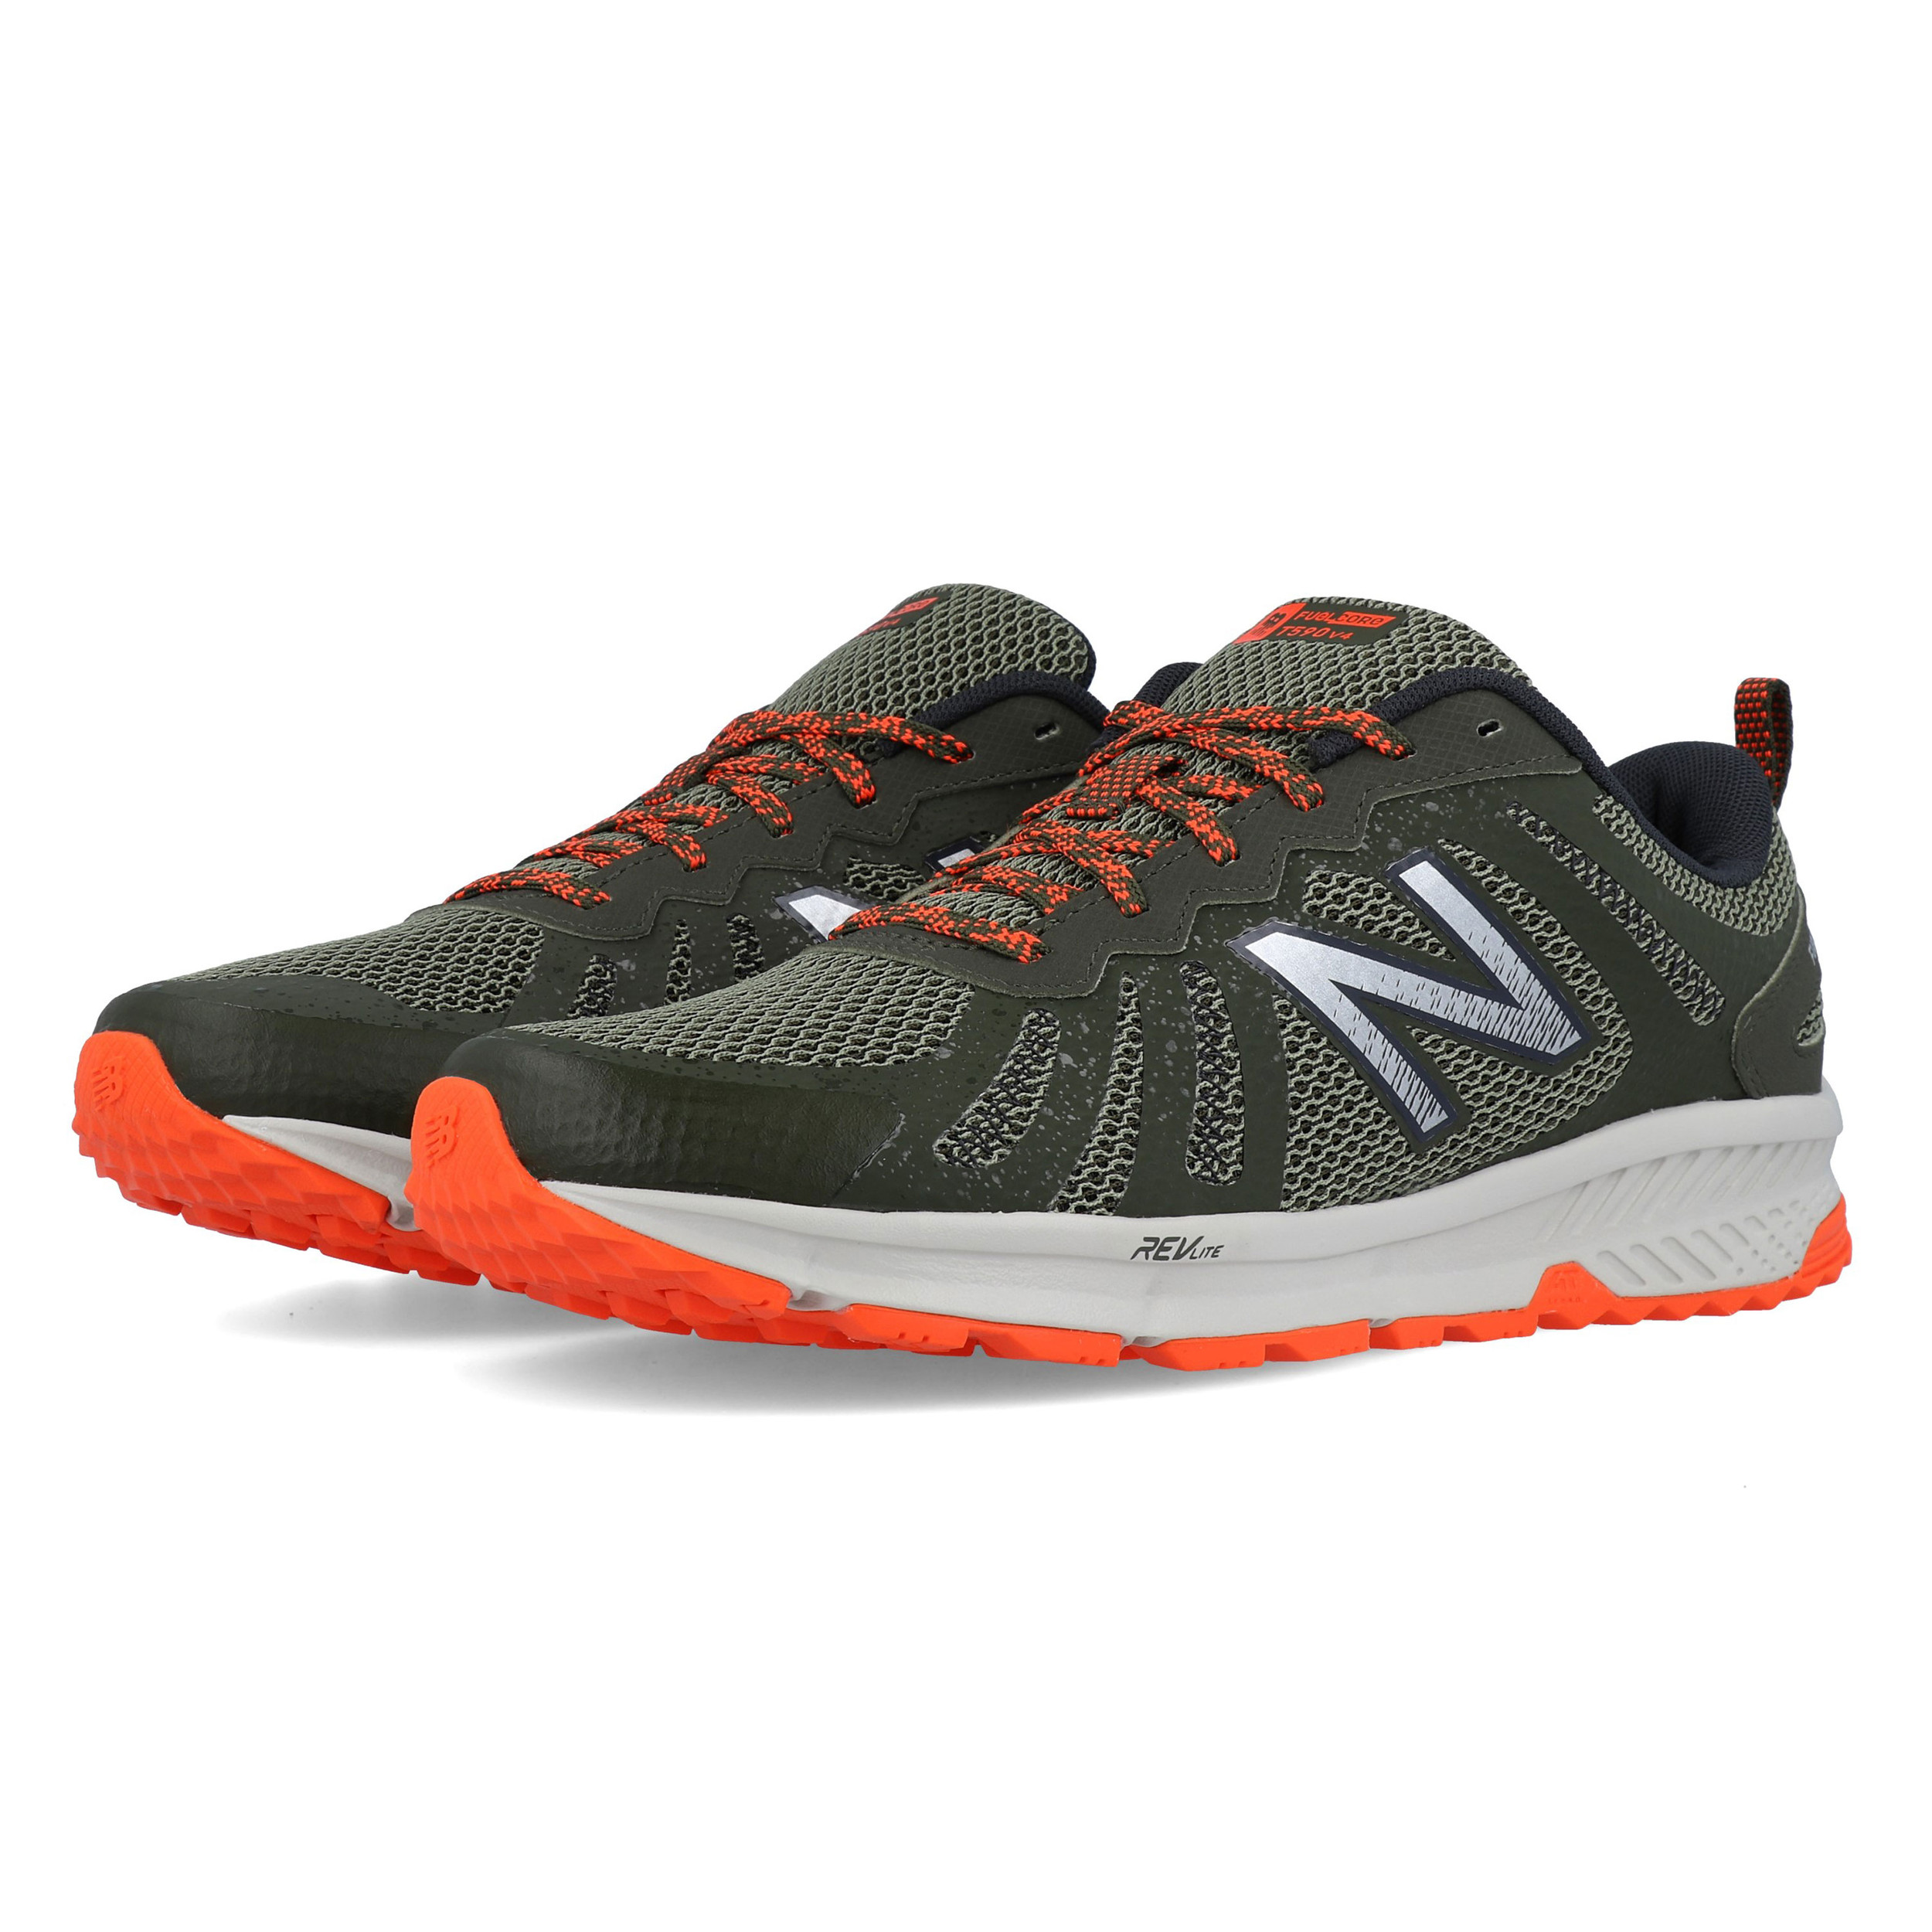 Details about New Balance Mens 590V4 Trail Running Shoes Trainers Sneakers Green Sports